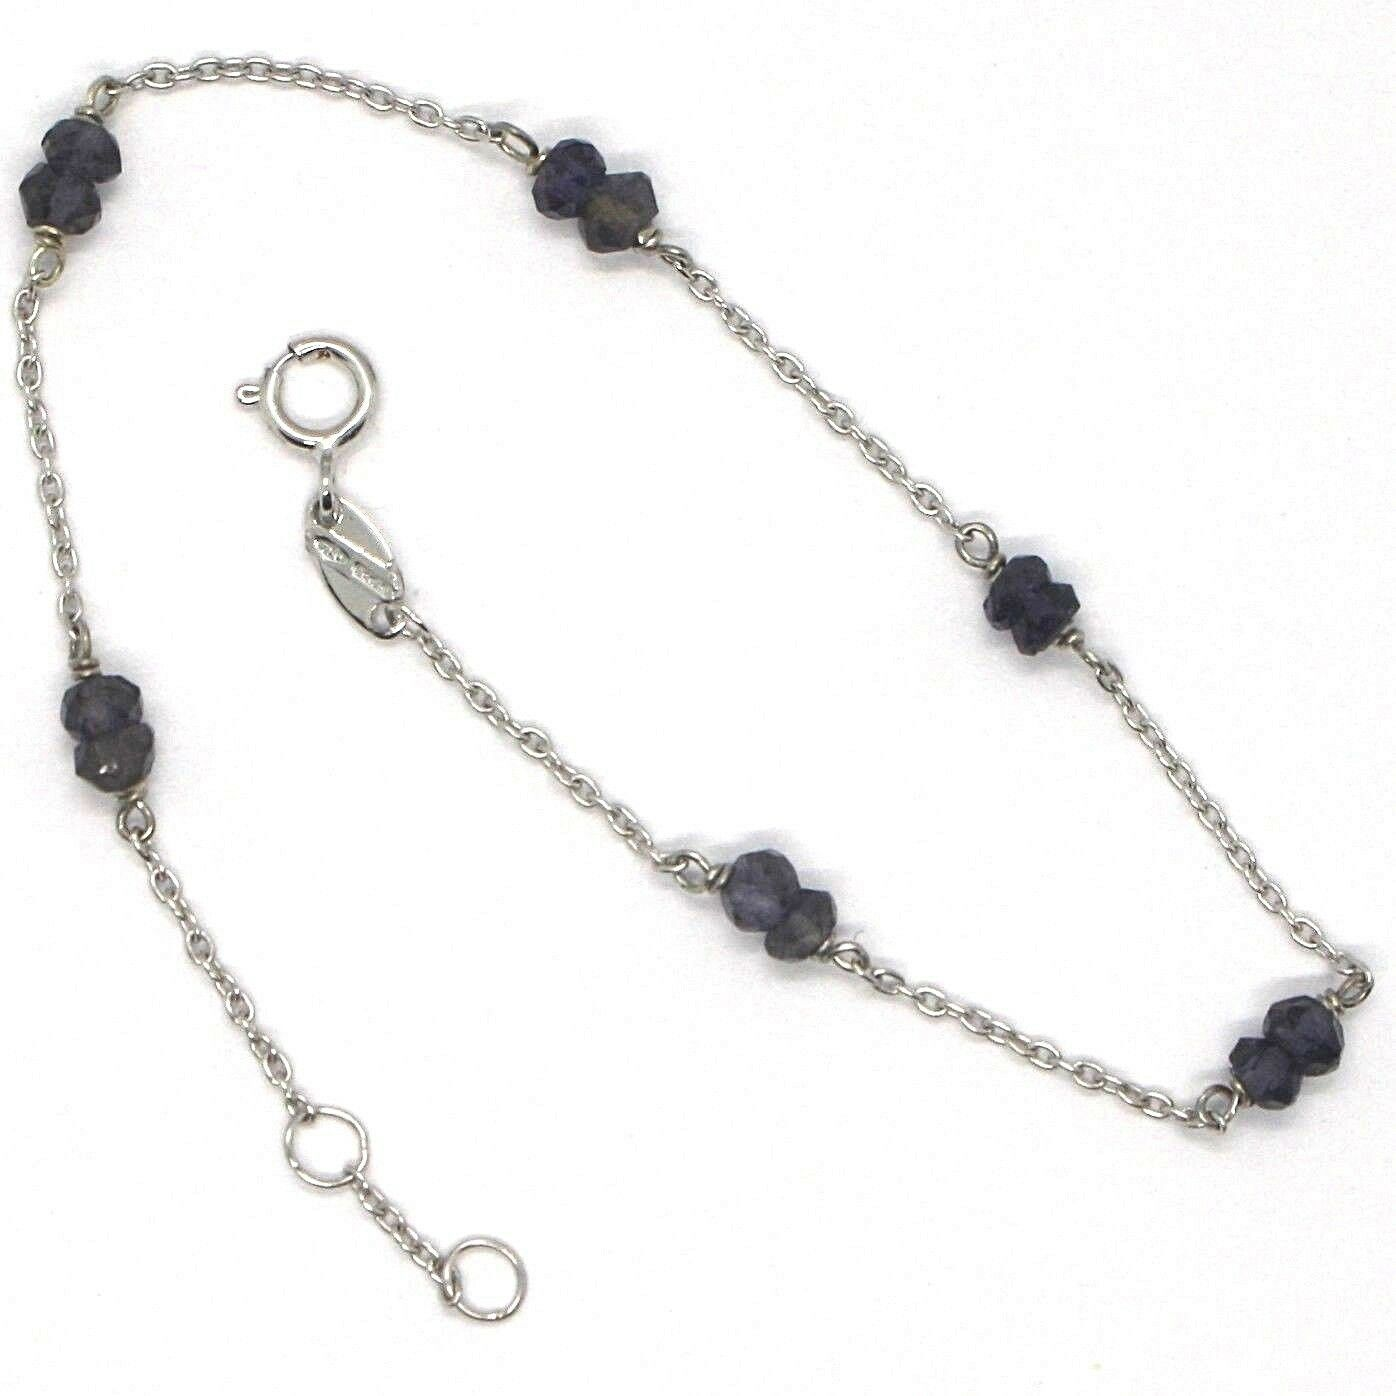 Bracelet White Gold 18K 750 with Iolite Blue, Faceted, Made in Italy